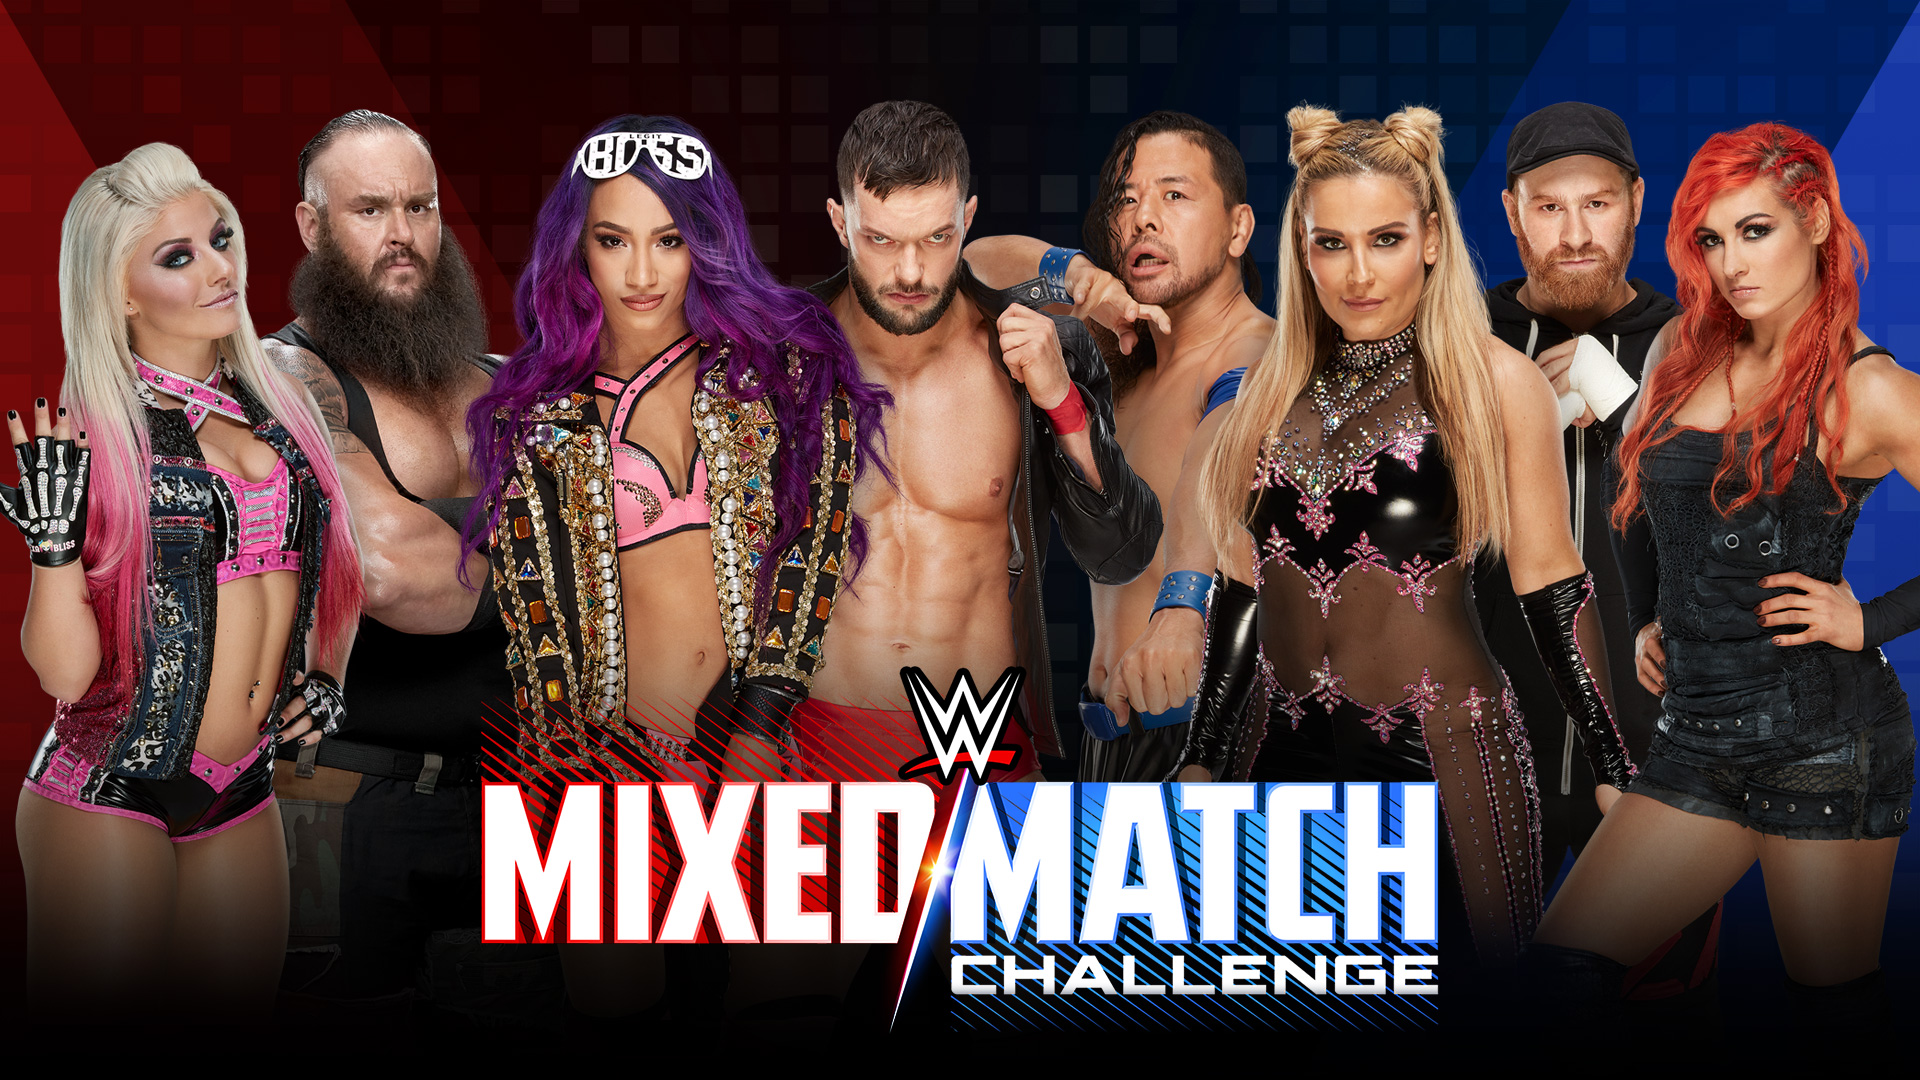 WWE's Natalya gearing up for 'Mixed Match Challenge': 'Expect the unexpected'